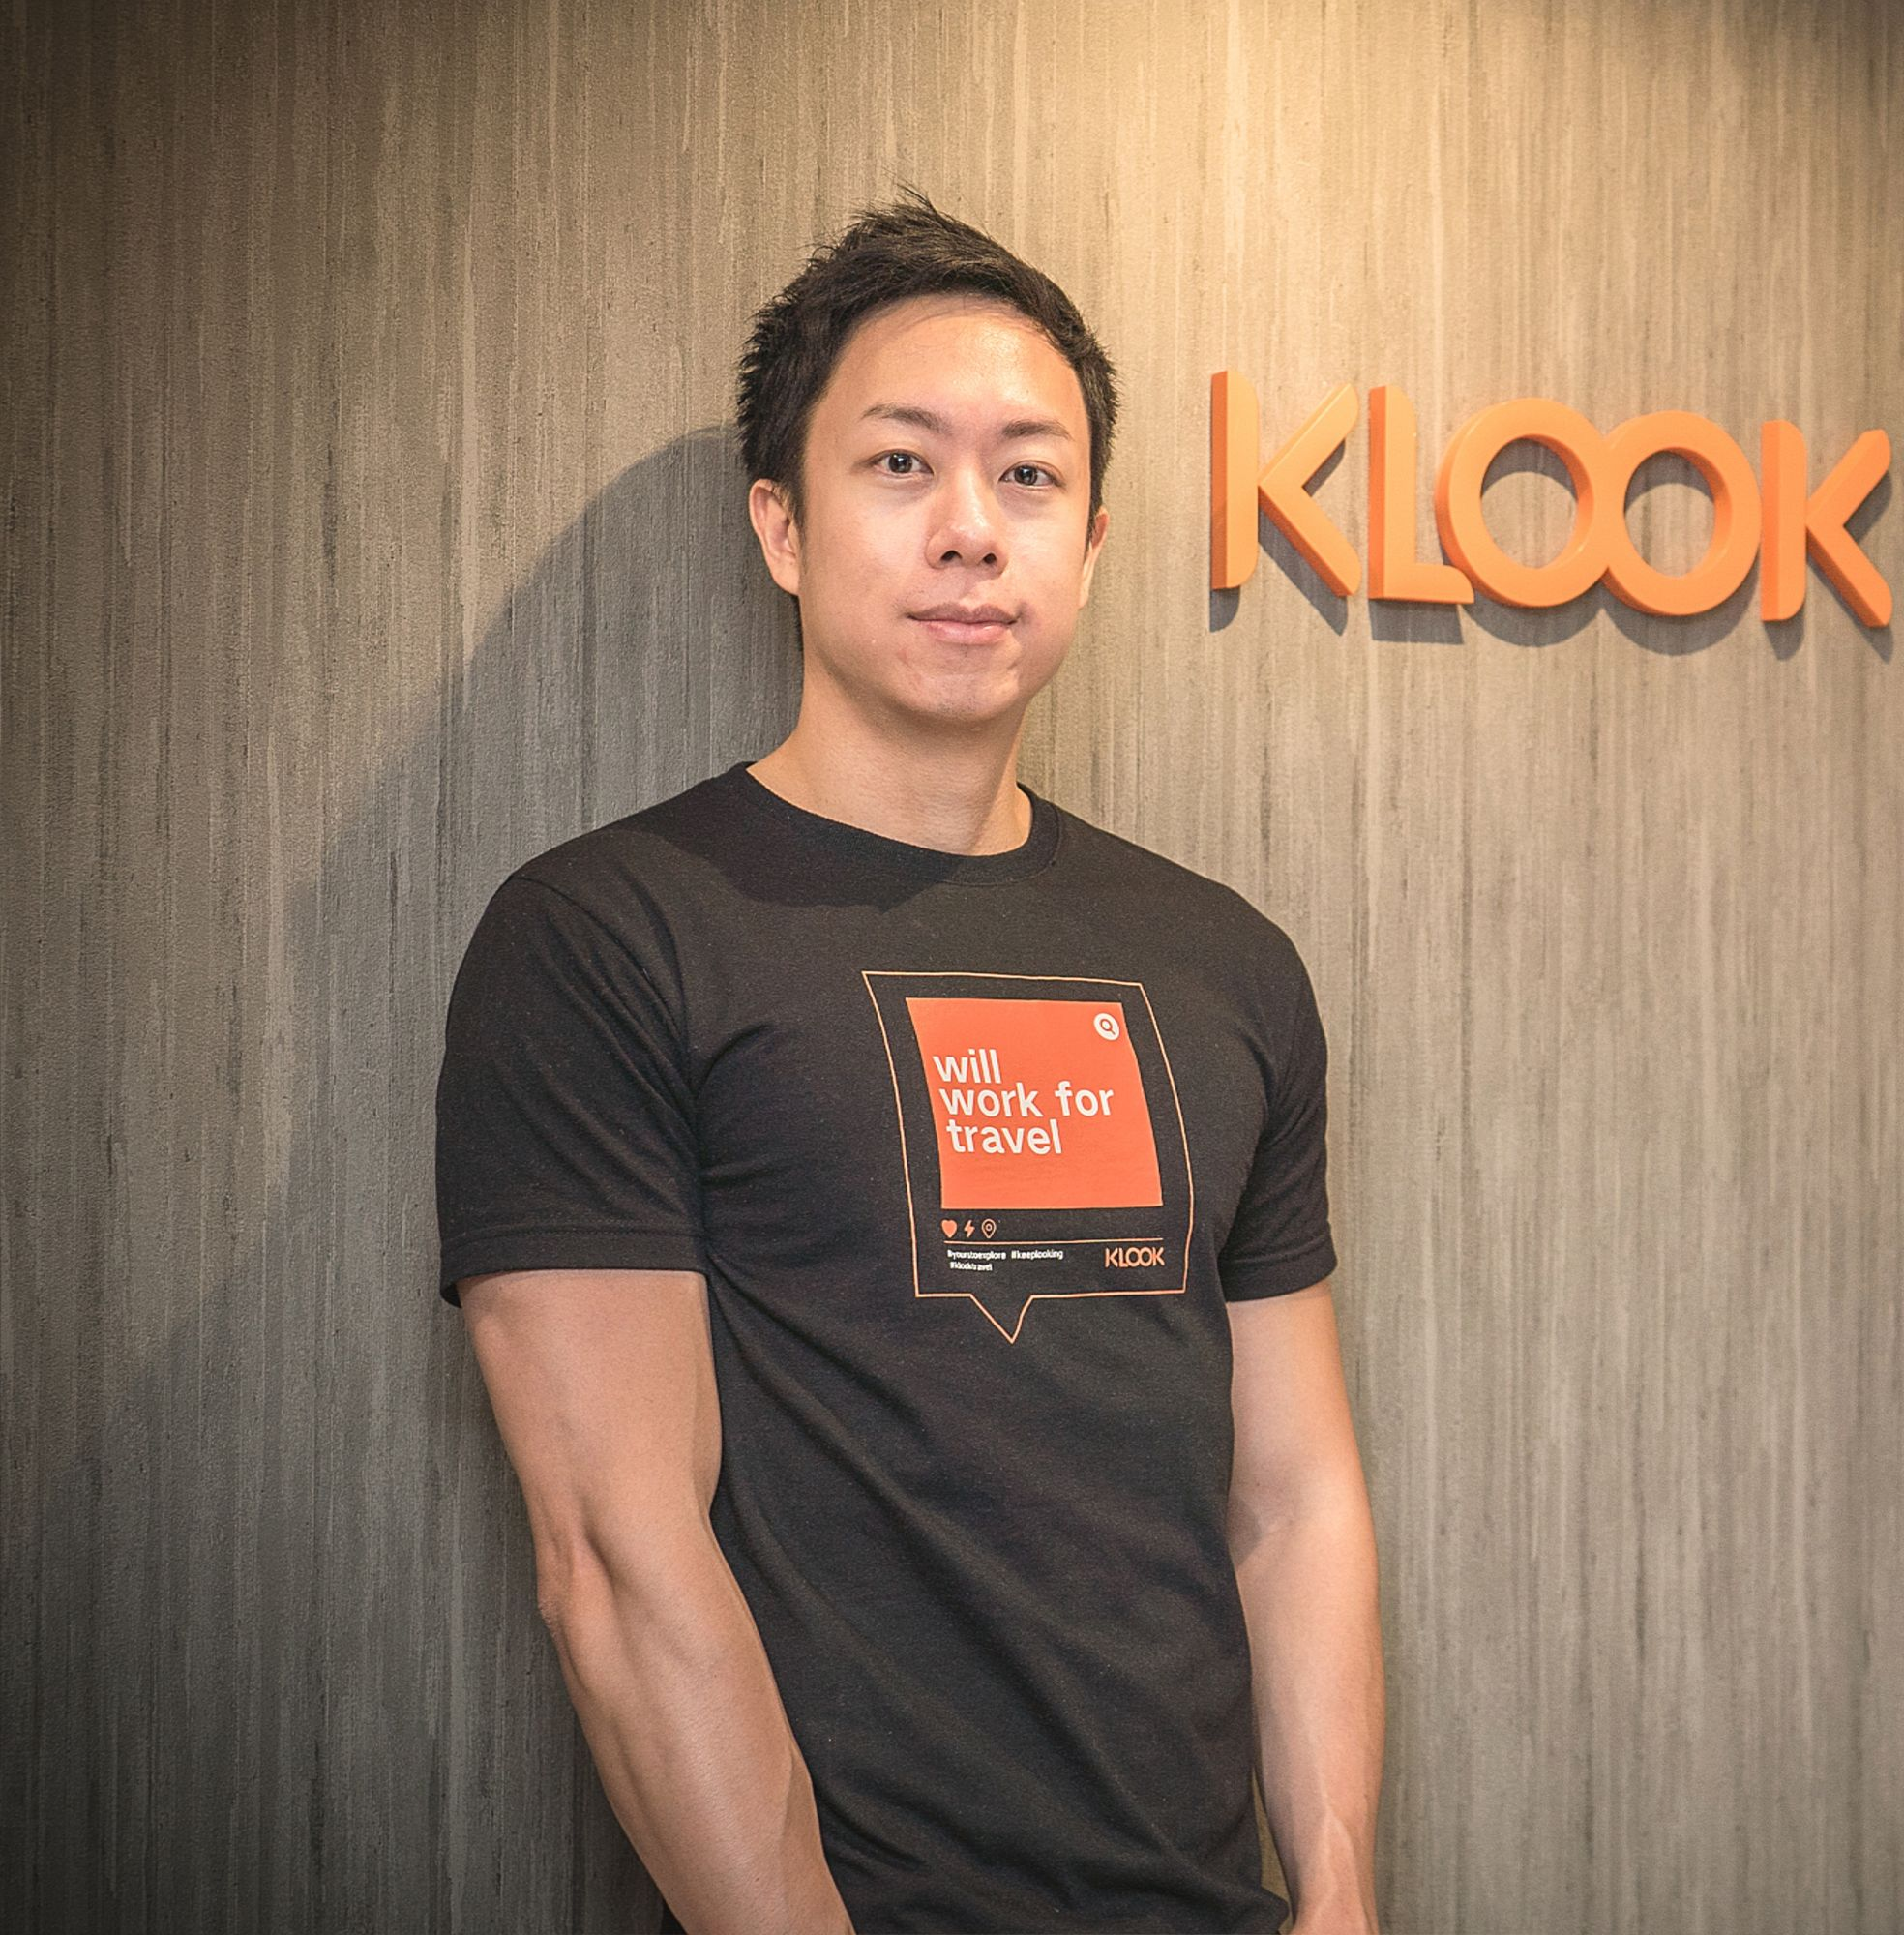 Klook's Founder On How To Build A Business Across Borders